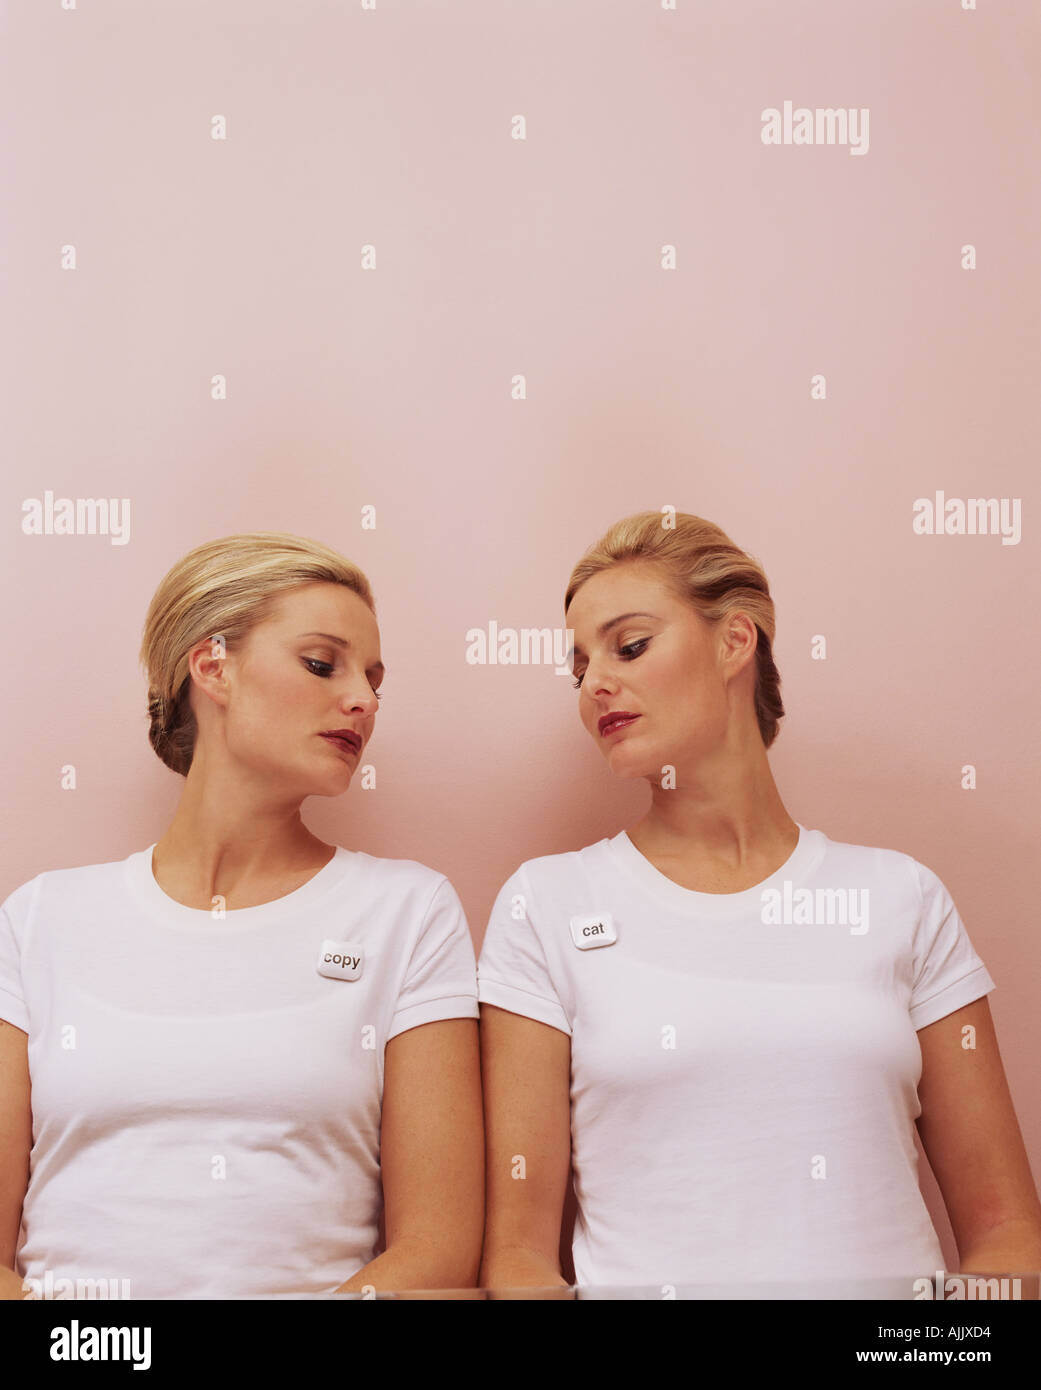 Women looking at each other's badges - Stock Image